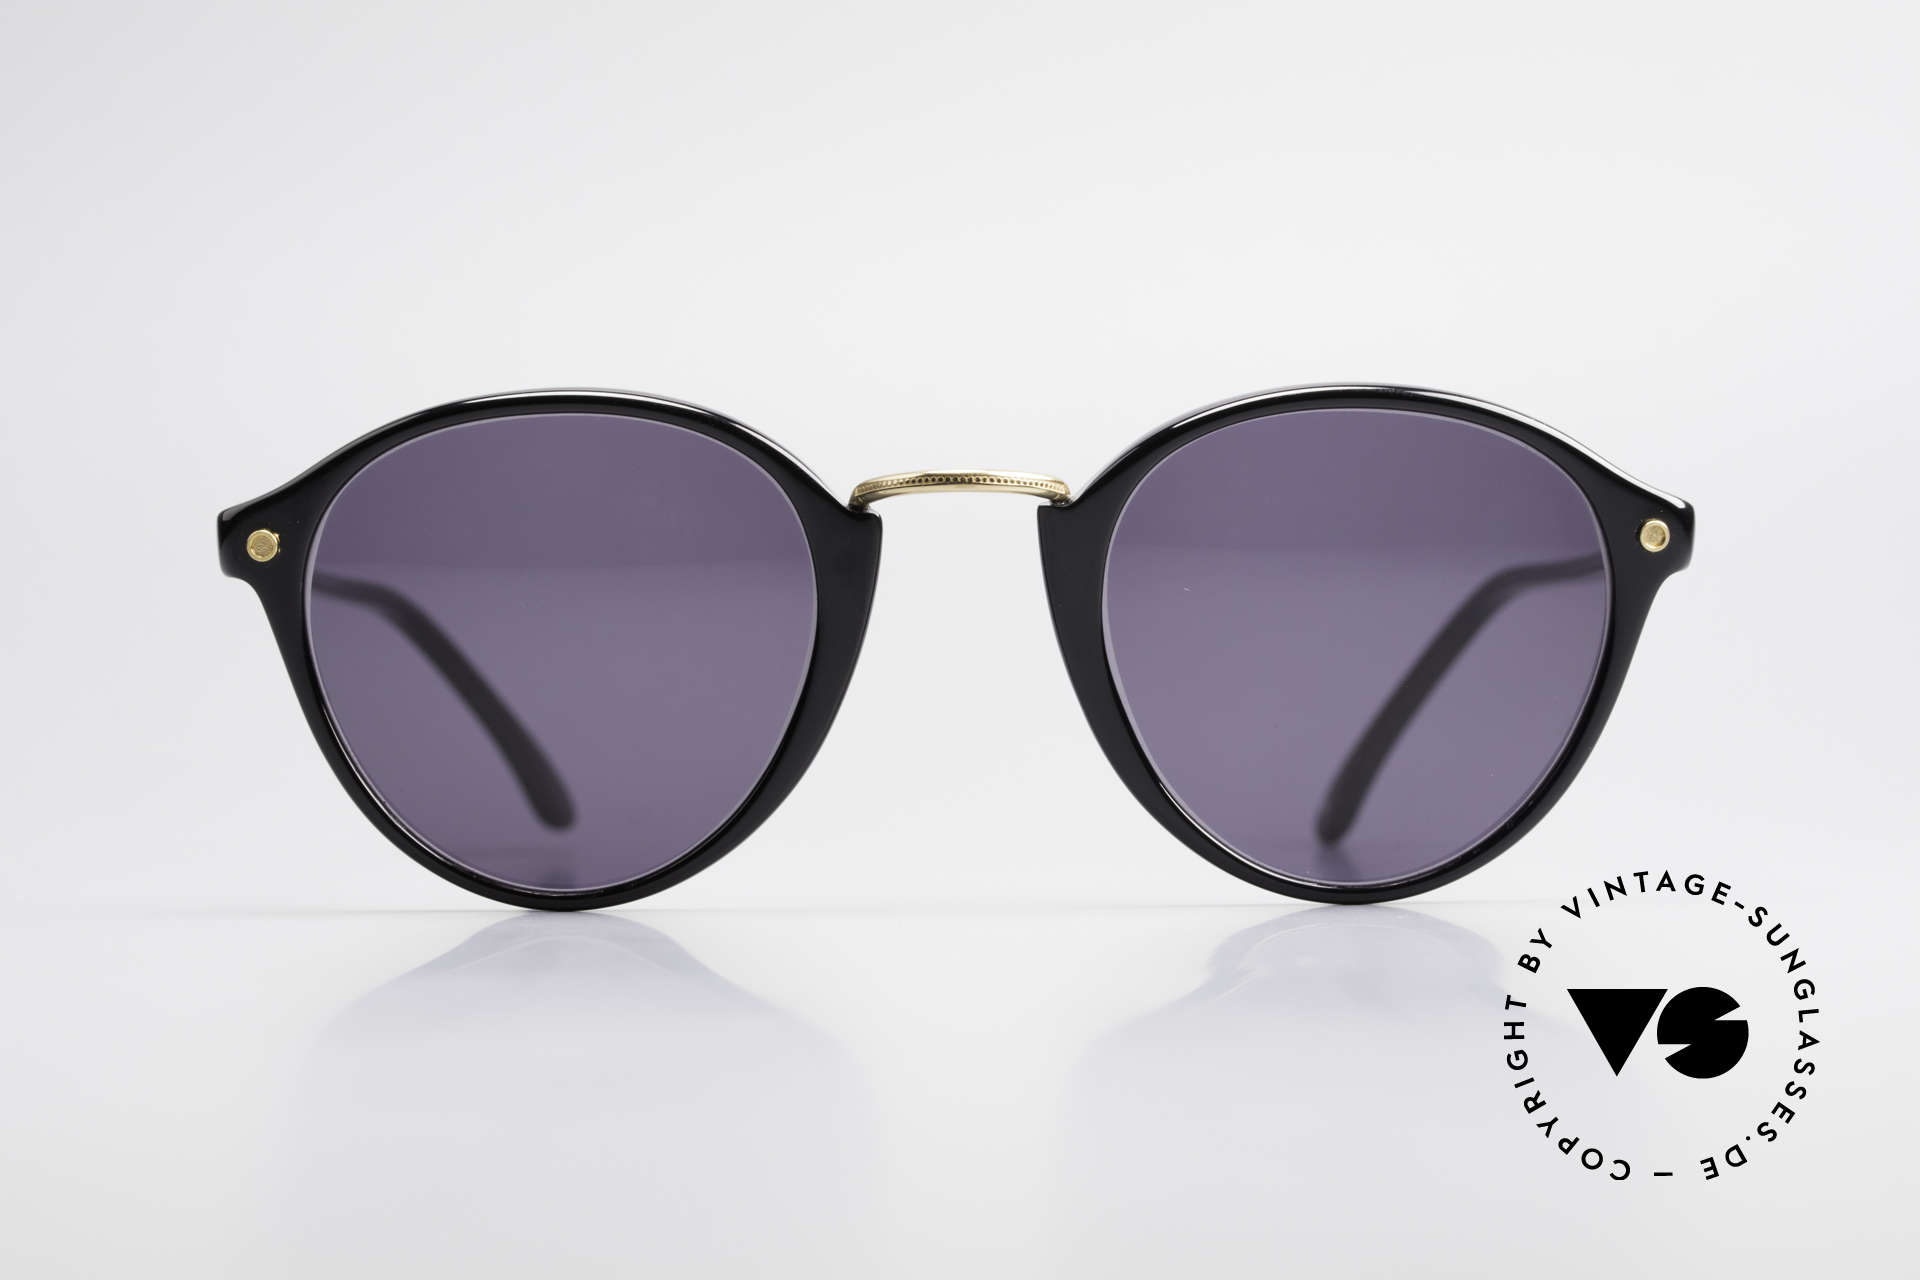 Cutler And Gross 0249 90's Panto Sunglasses Vintage, classic, timeless UNDERSTATEMENT luxury sunglasses, Made for Men and Women